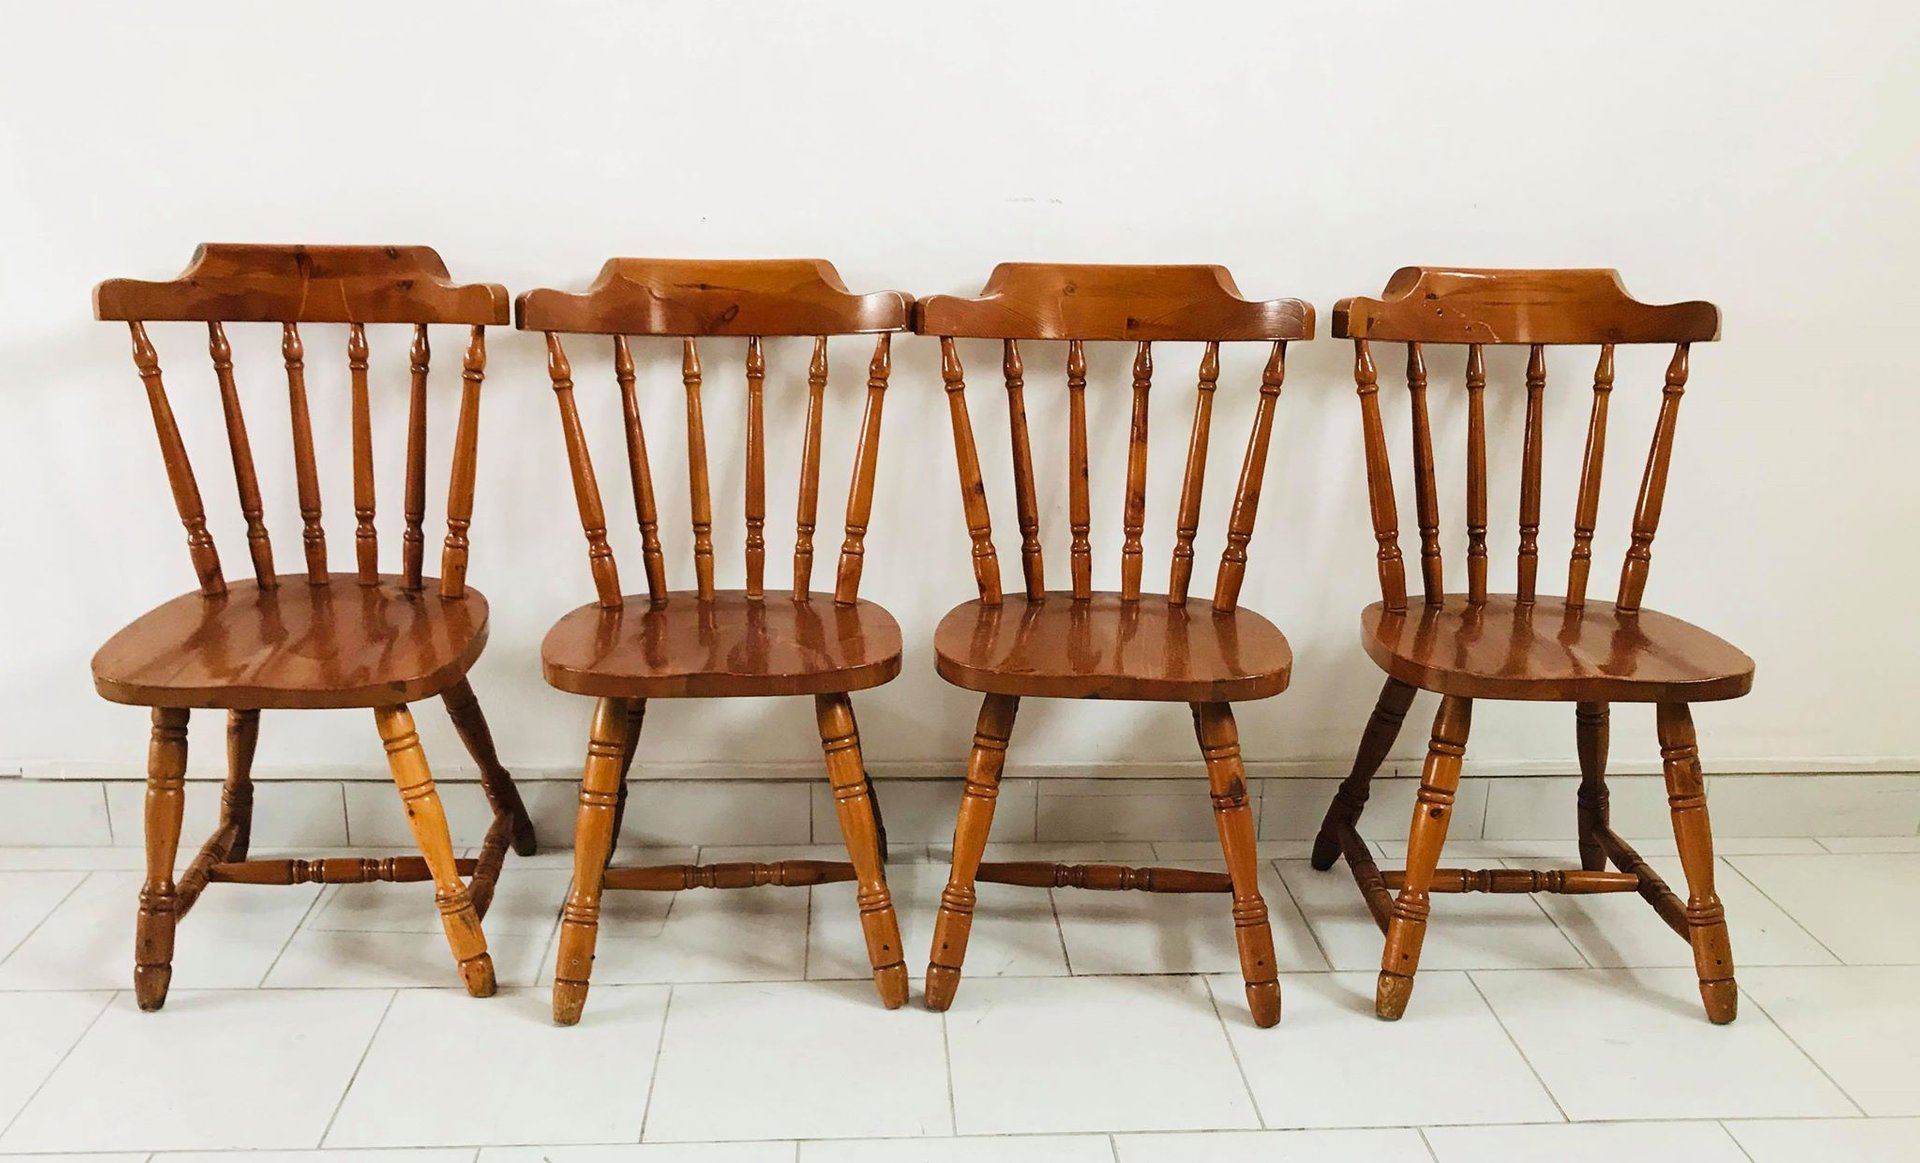 Rustic Stools Kitchens Rustic Kitchen Chairs 1930s Set Of 4 For Sale At Pamono